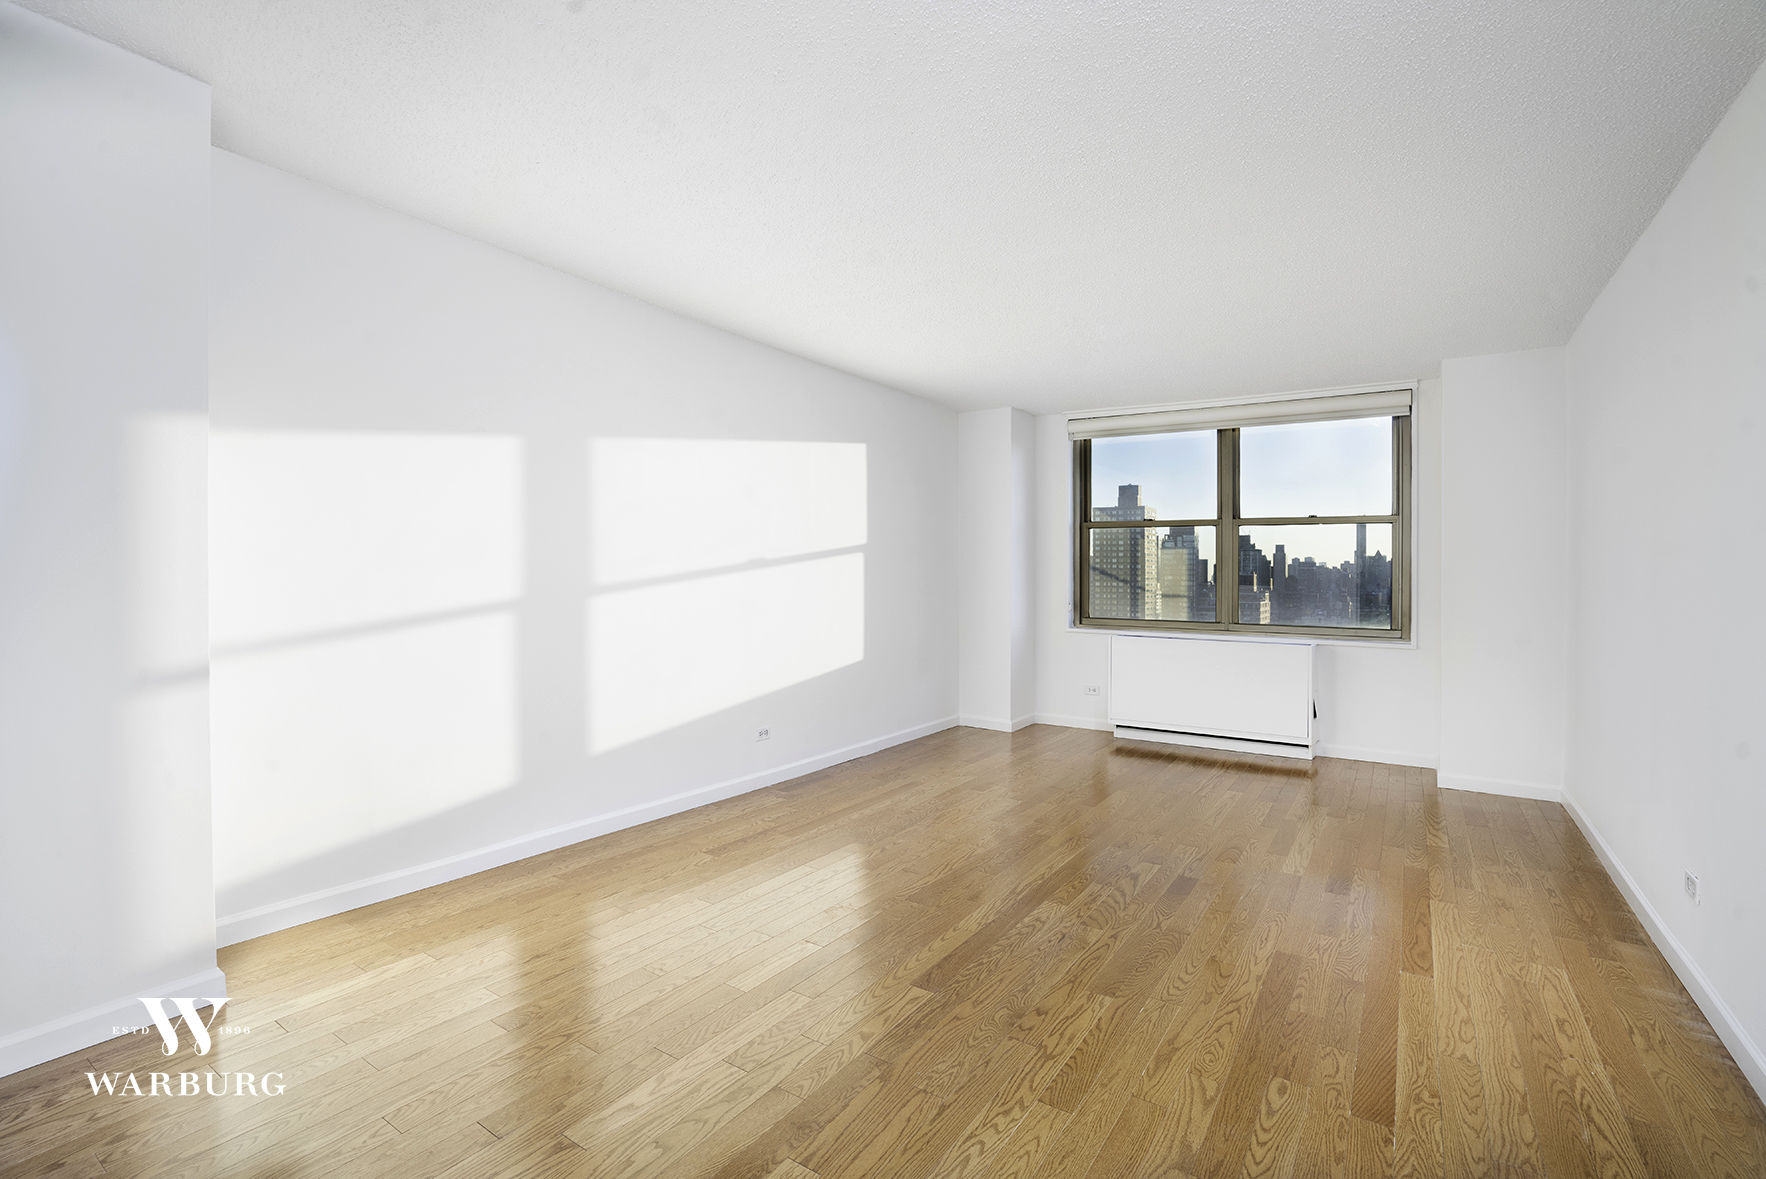 301 East 79th Street, Apt 29 K Photo 1 - WR-3009366